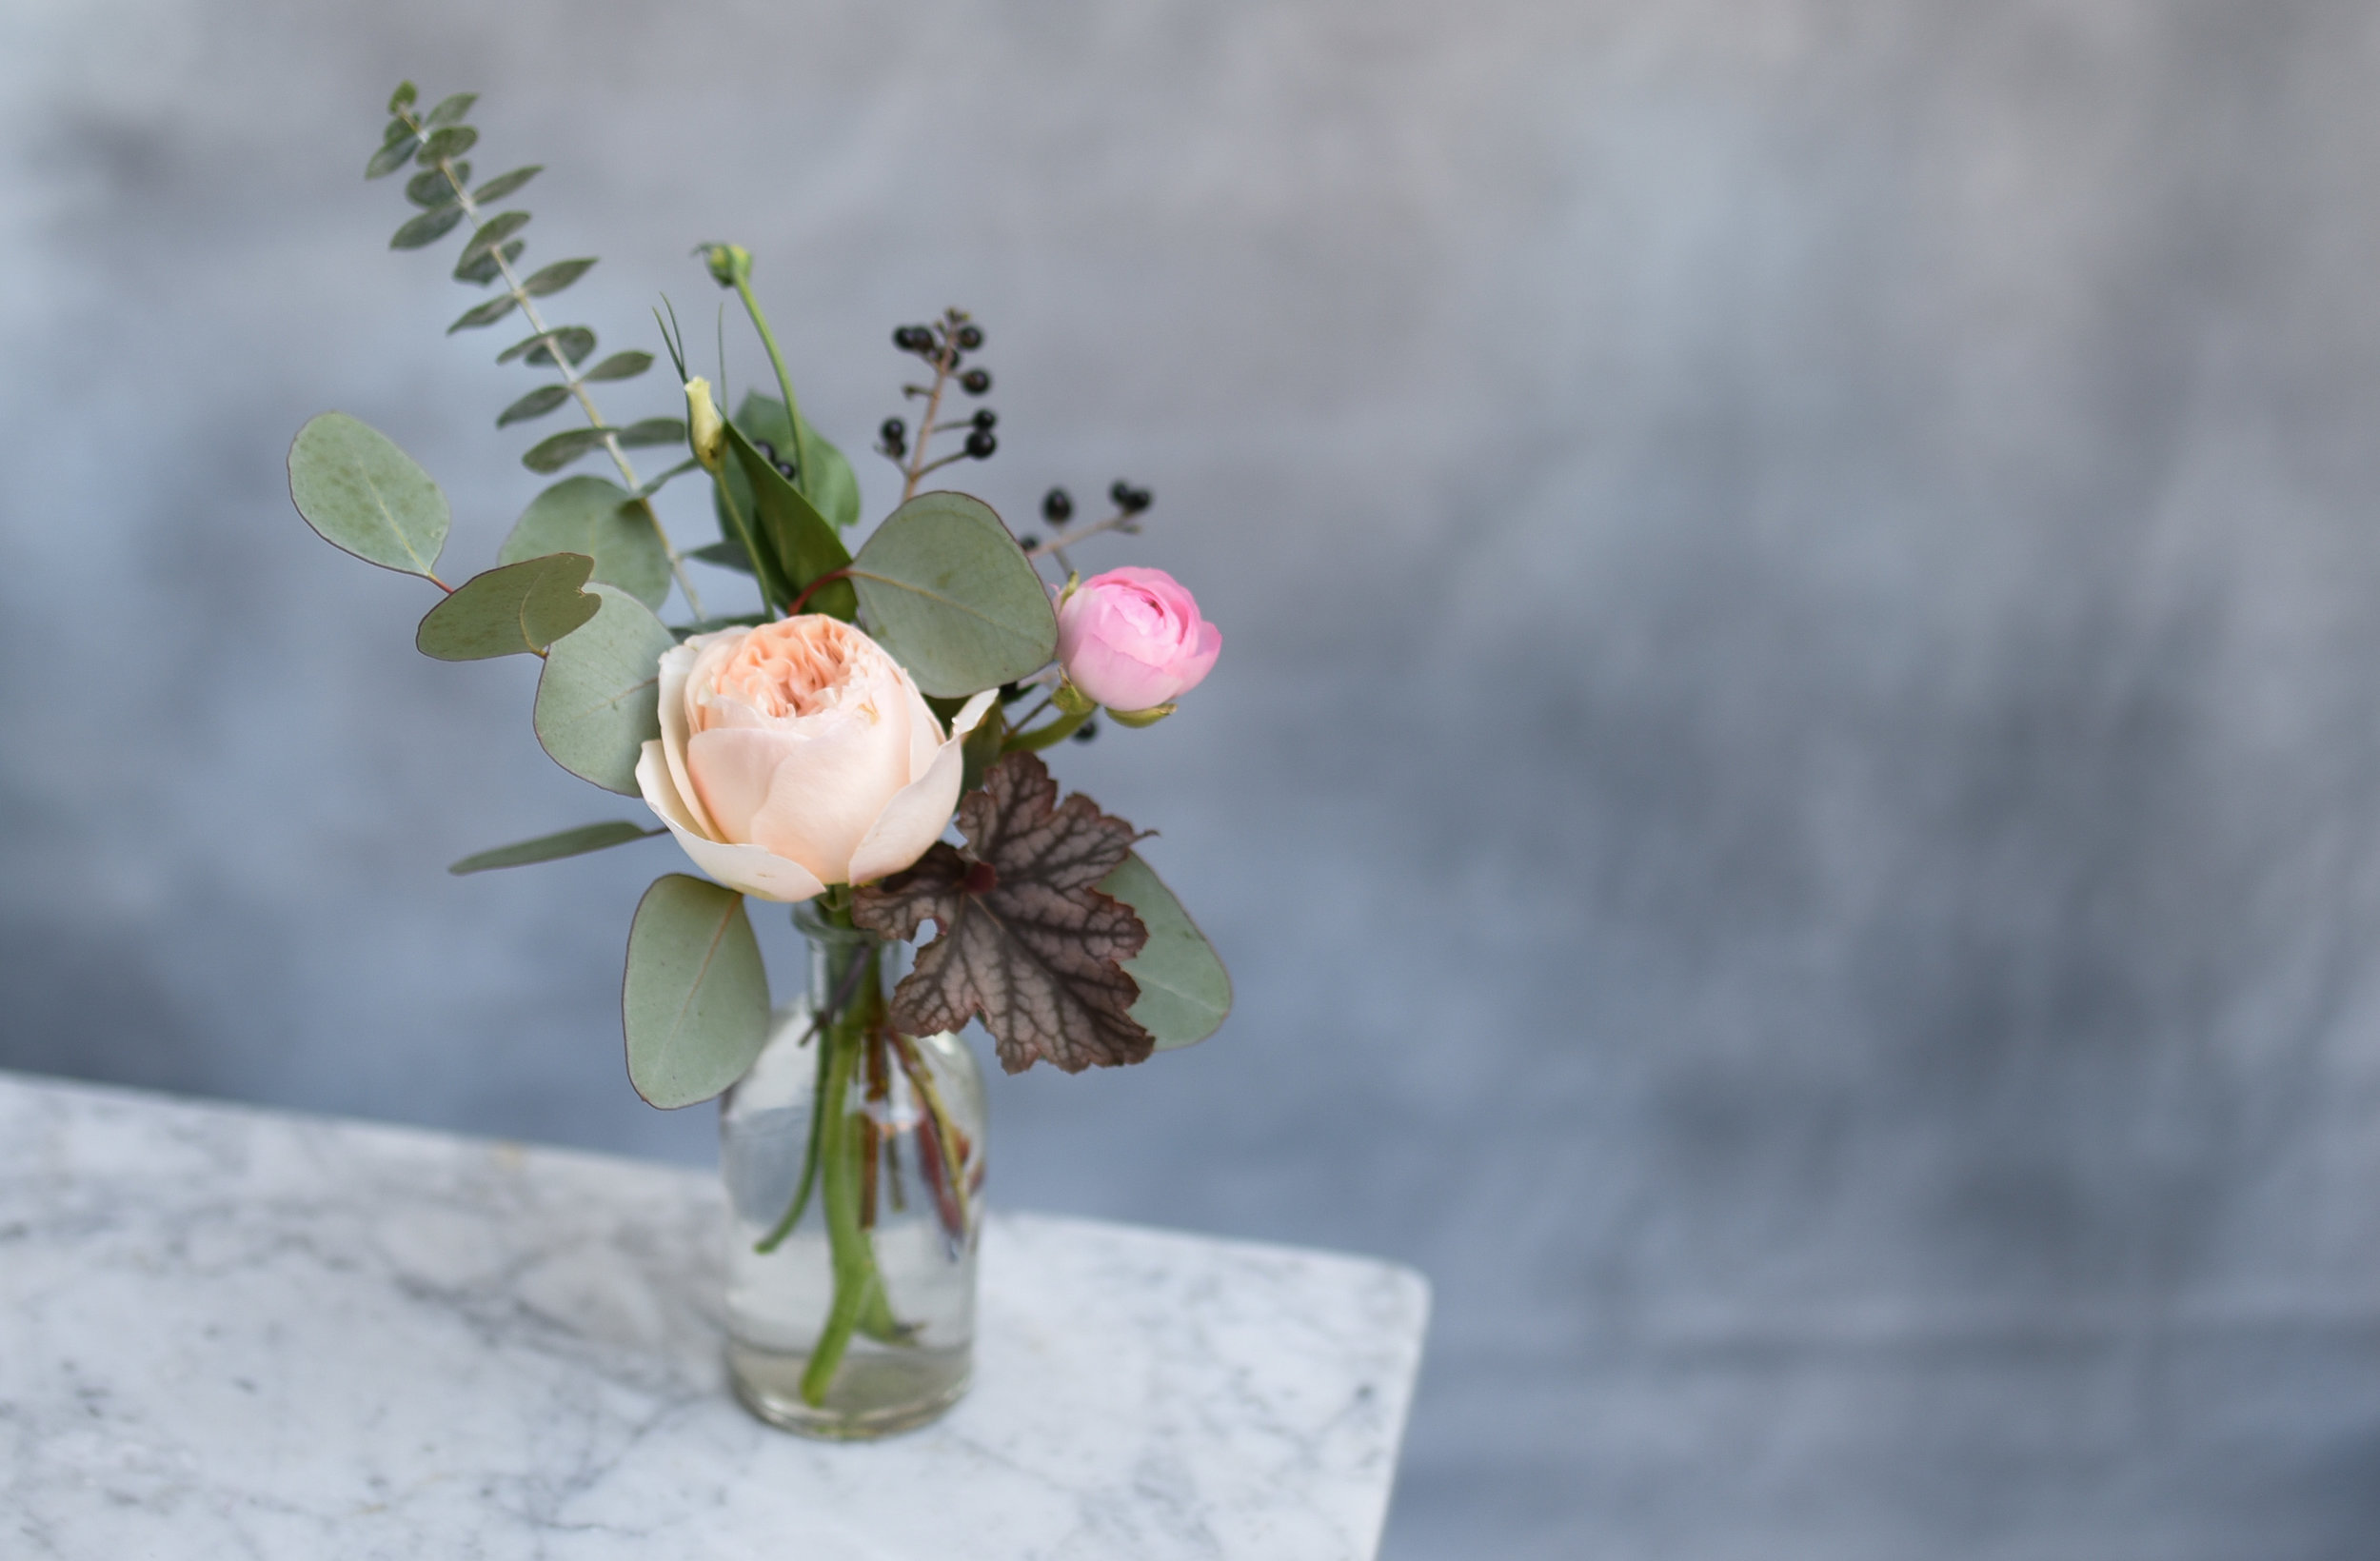 Garden roses and interesting greens for the bud vases